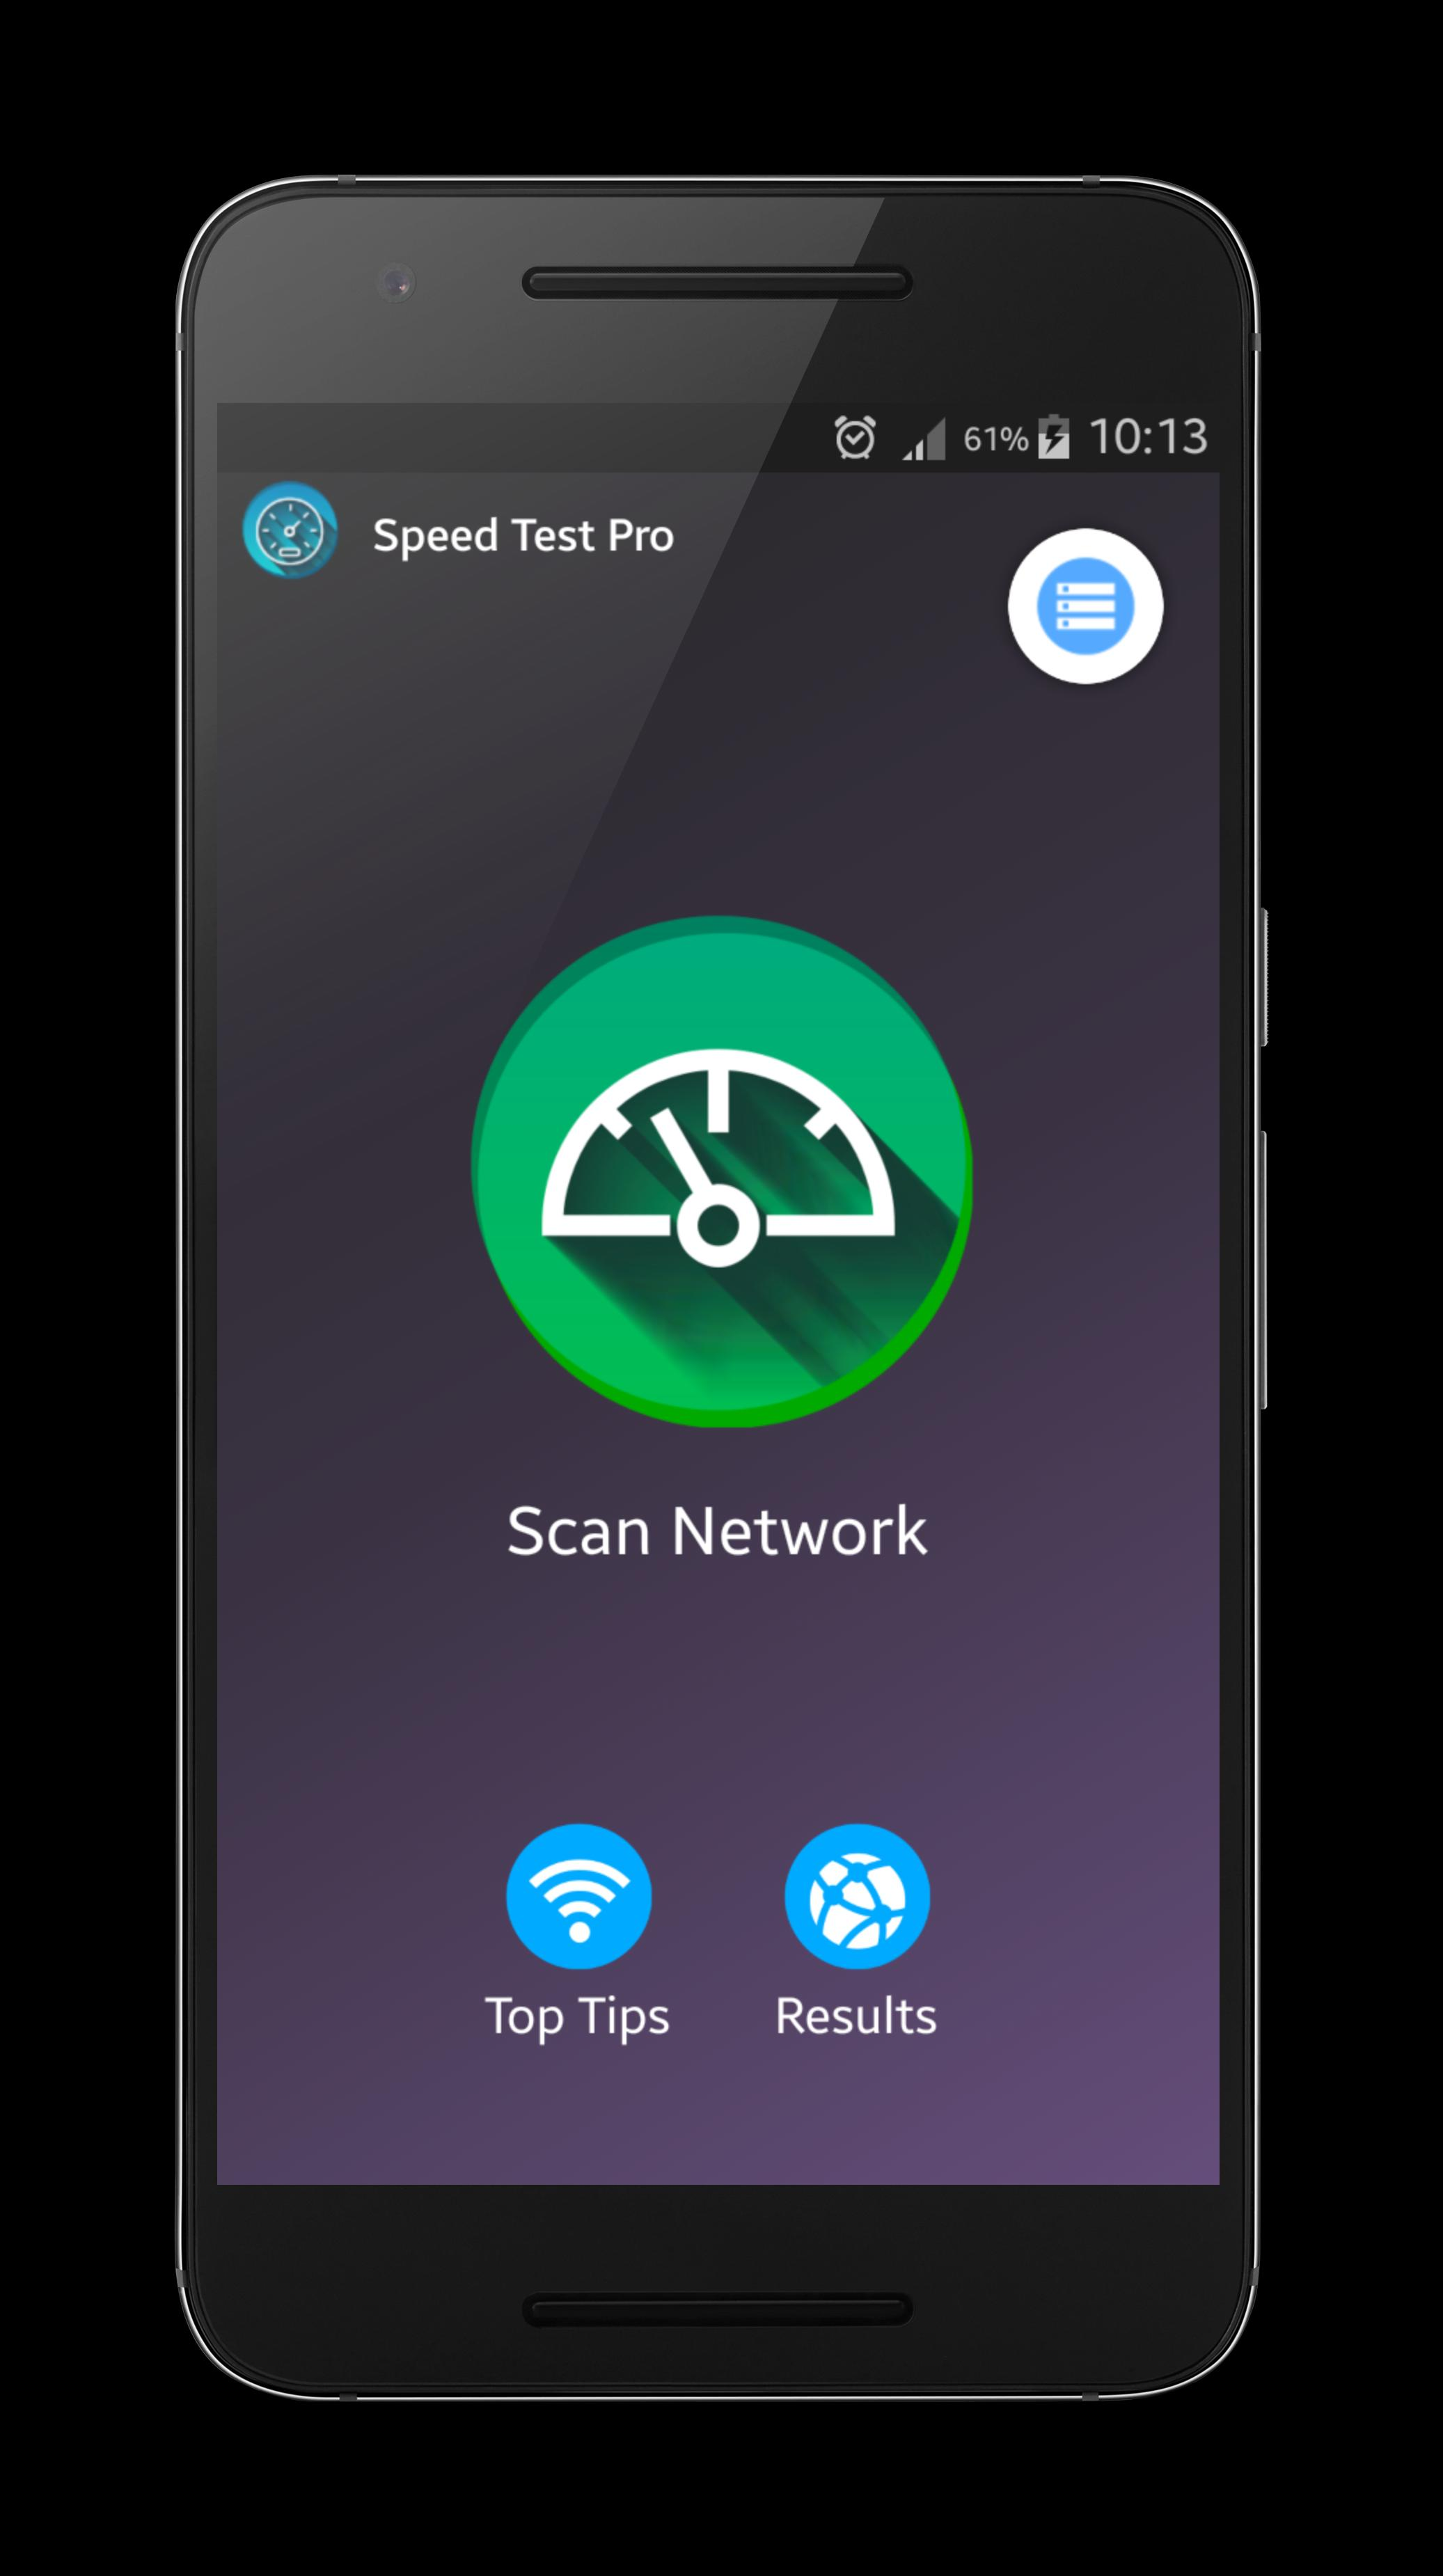 Speed Test Pro for Android™ screenshot 2